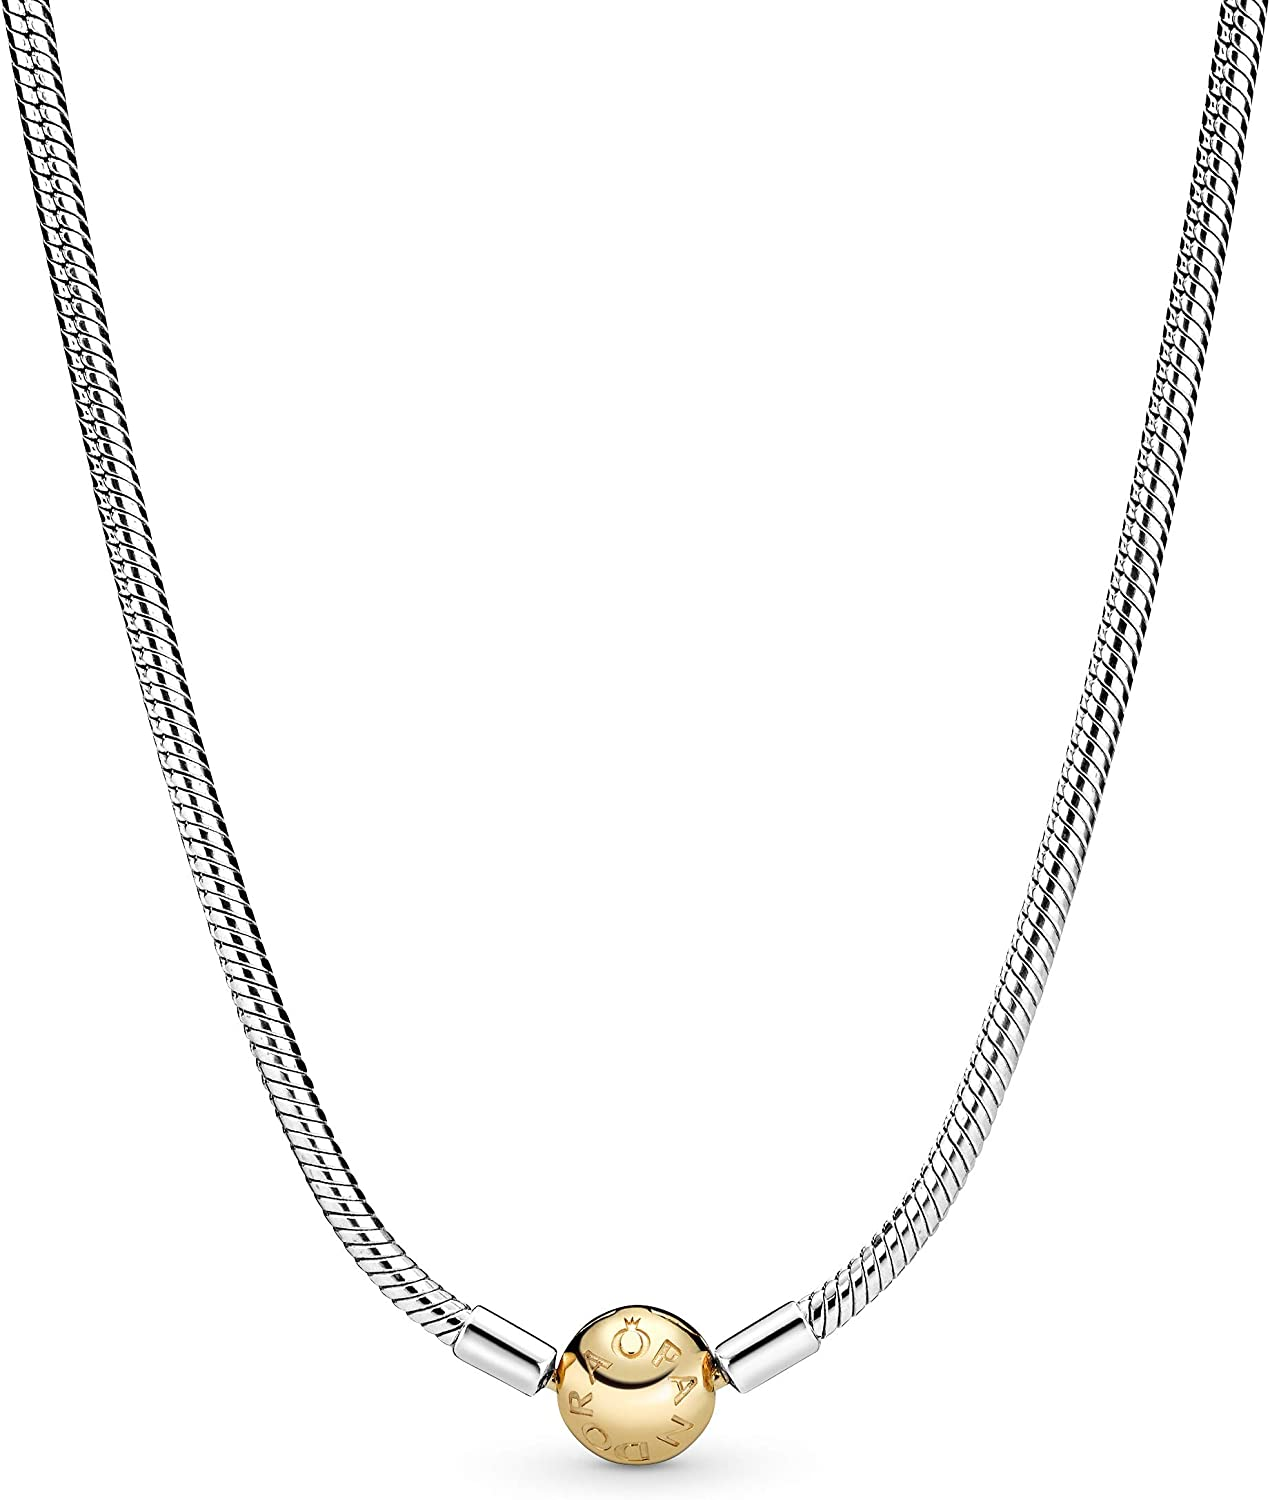 Pandora Jewelry Iconic Snake Chain Sterling Silver and 14K Yellow Gold  Necklace, 17.7